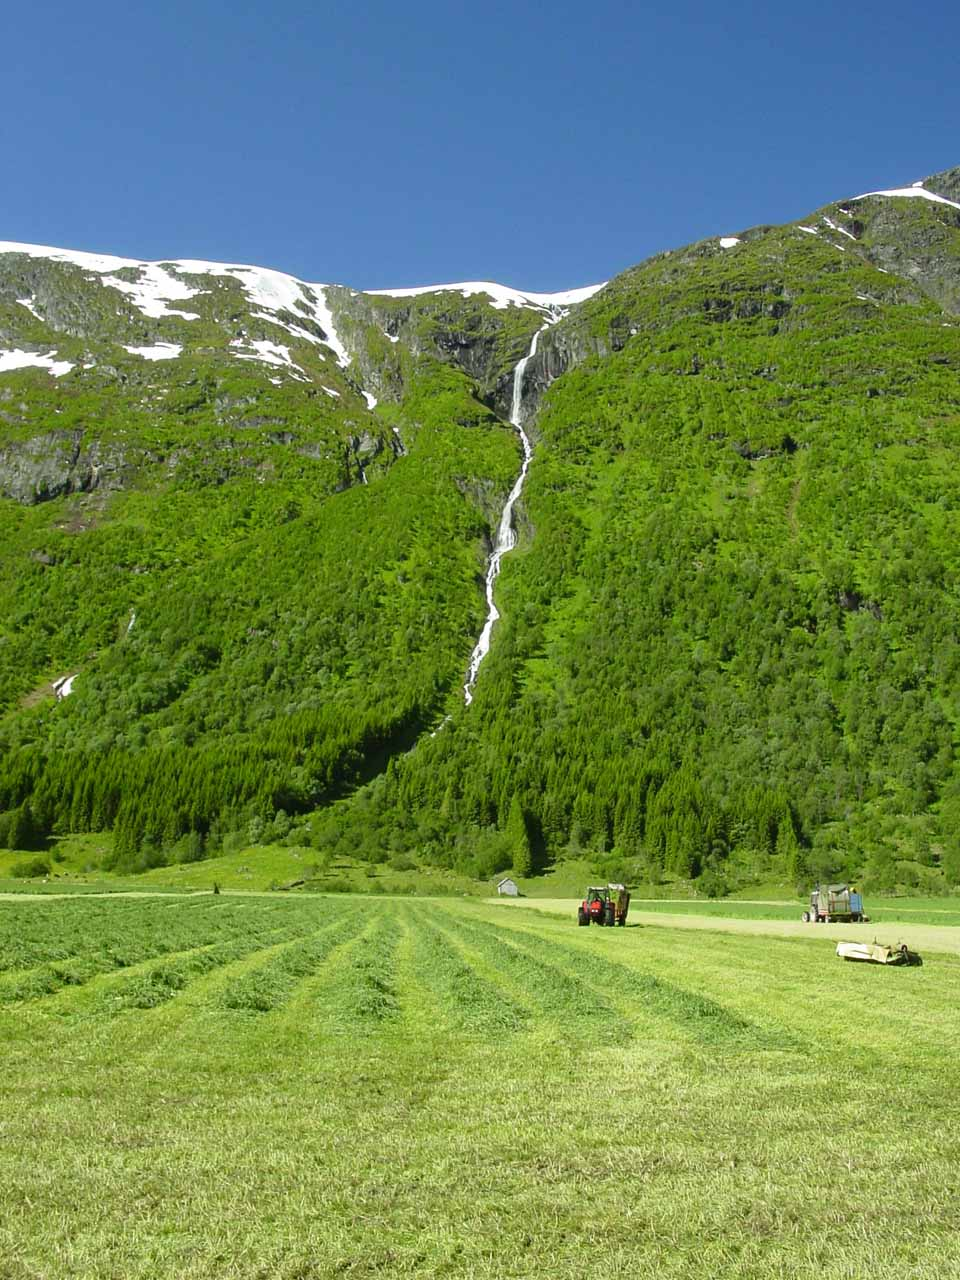 More direct look at Nonfossen and the farm field that a worker was tending to in the foreground